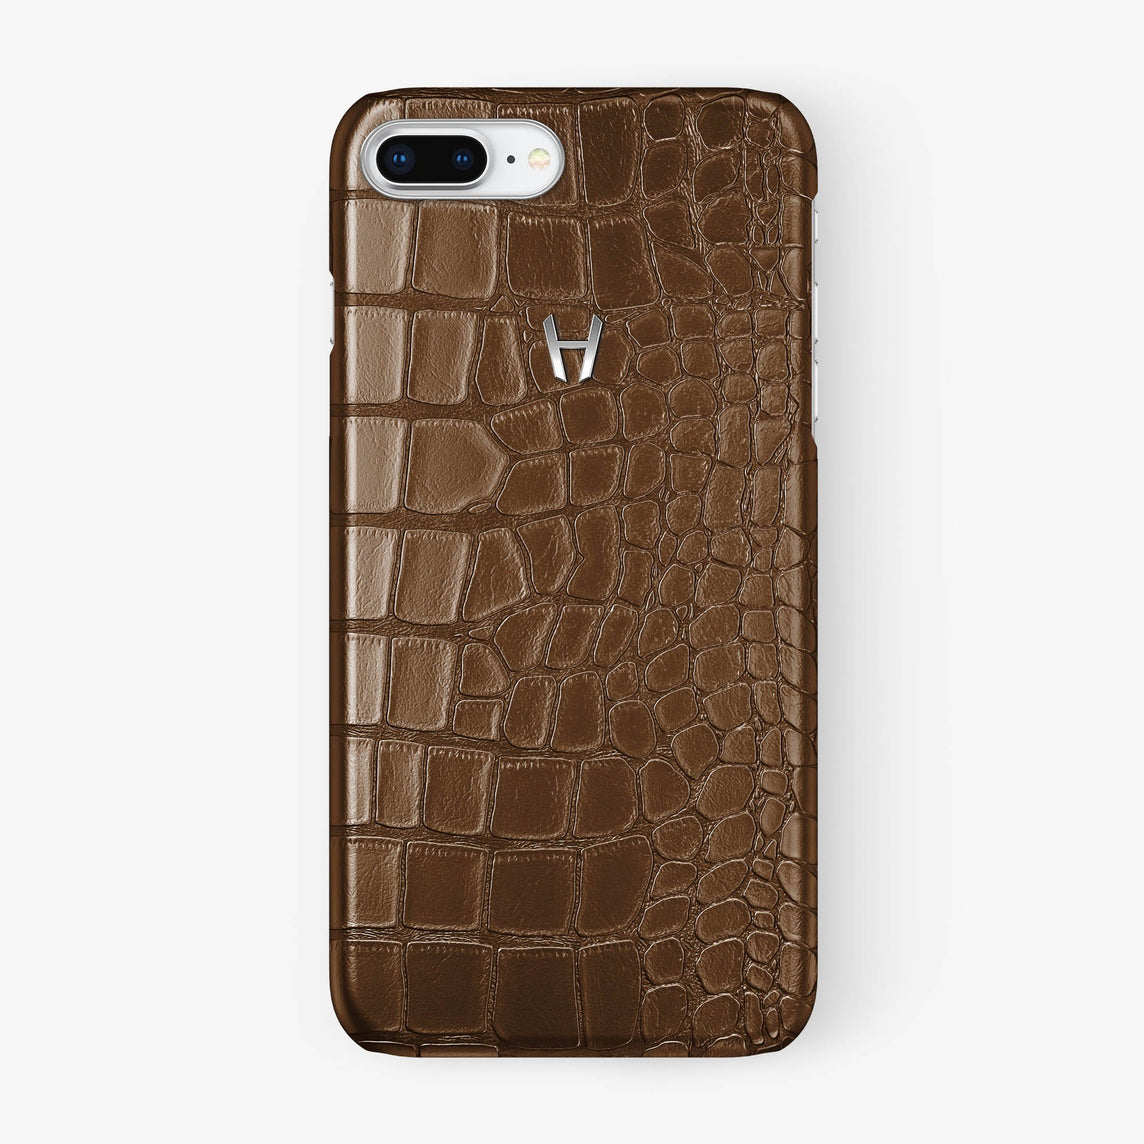 Alligator Case iPhone 7/8 Plus | Brown - Stainless Steel